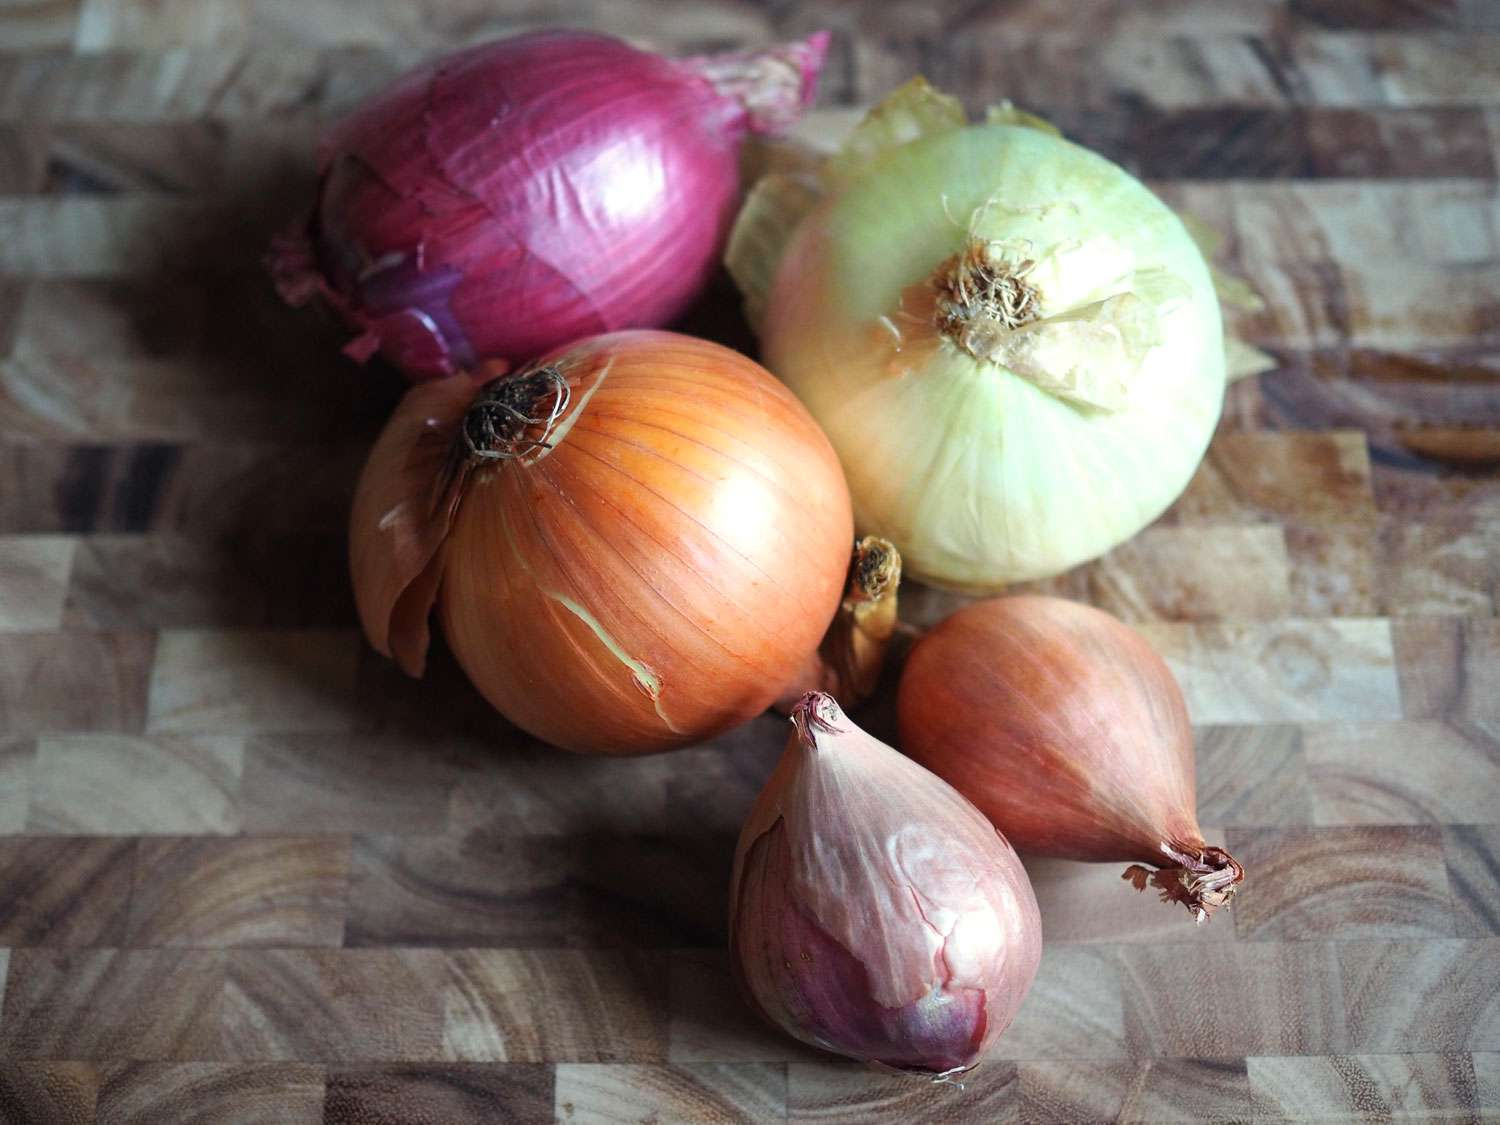 A collection of onions—red, yellow, sweet, and shallots—on a wooden cutting board.